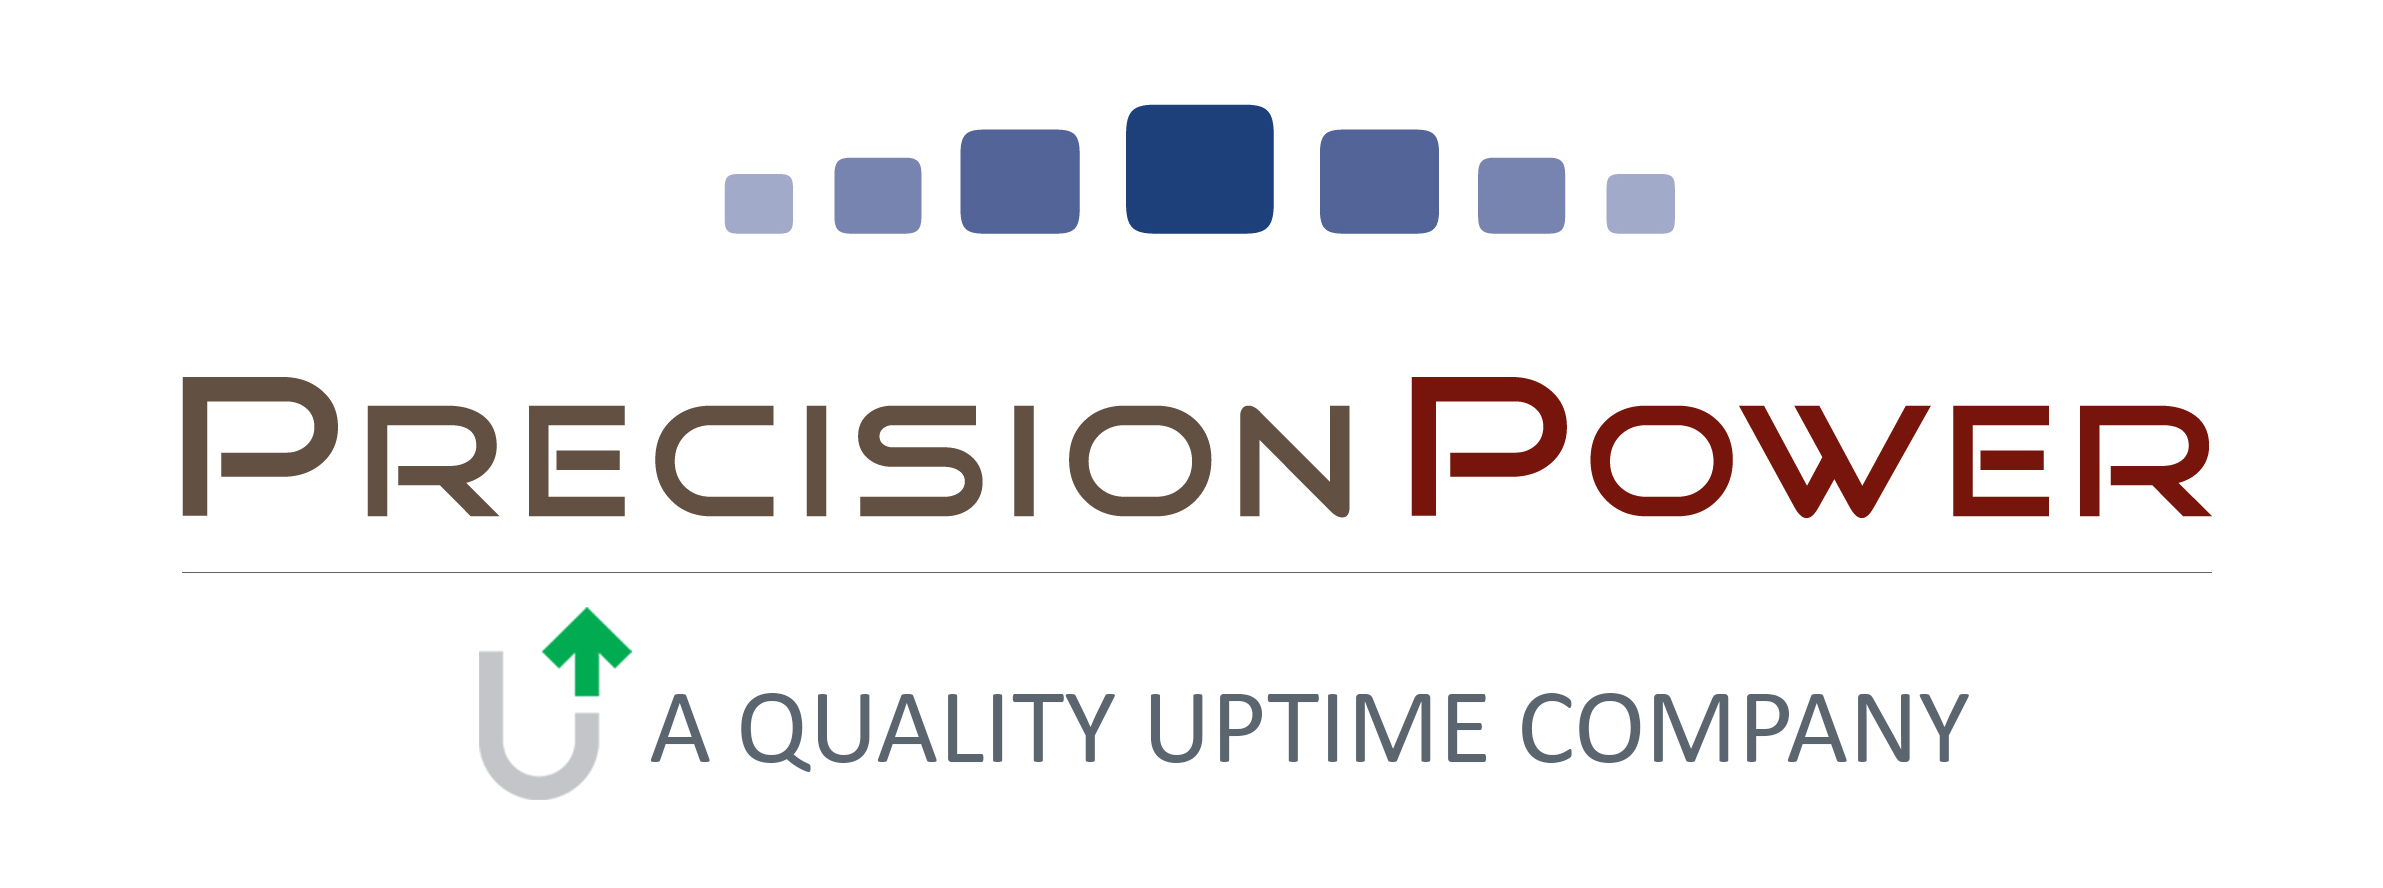 Precision Power is now a Quality Uptime Company